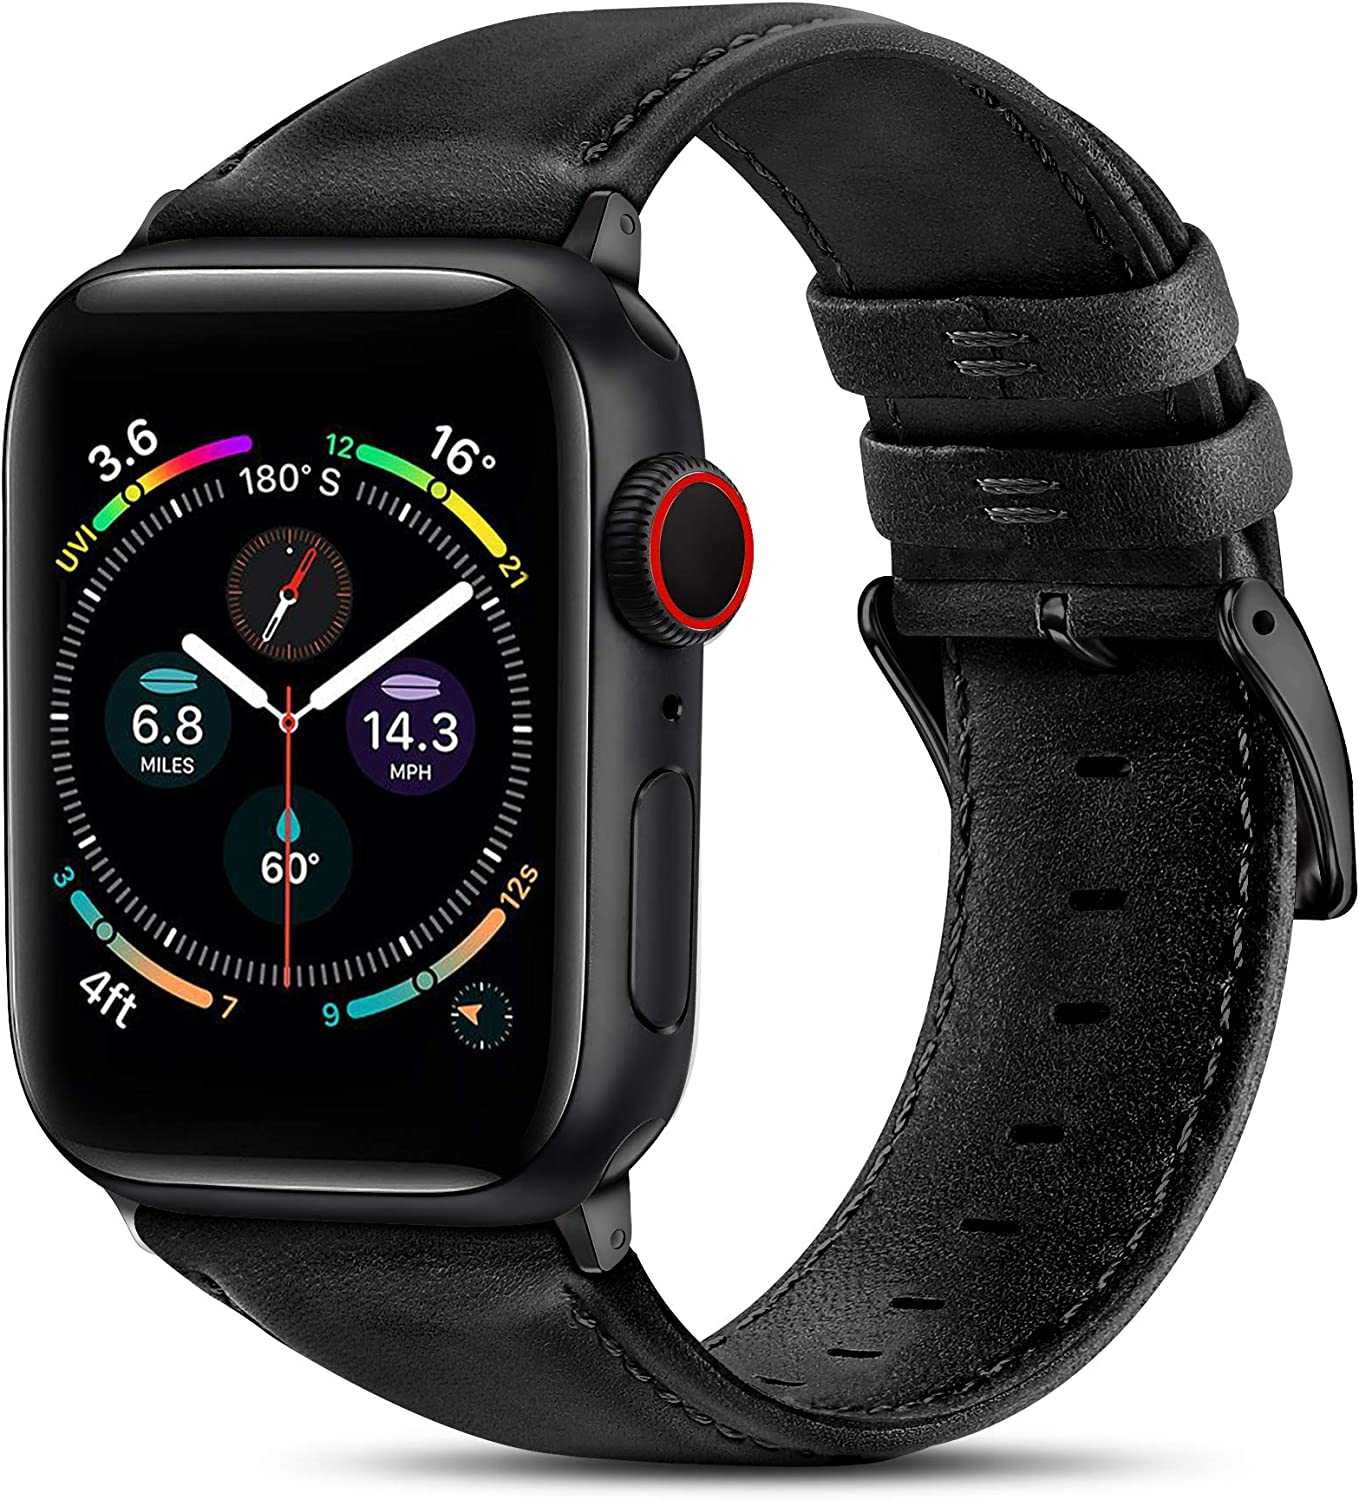 BRG Leather Bands Compatible with Apple Watch Band 44mm 42mm 40mm 38mm, Men Women Replacement Genuine Leather Strap for iWatch SE Series 6 5 4 3 2 1, Black Band/Black Adapter, 40mm 38mm